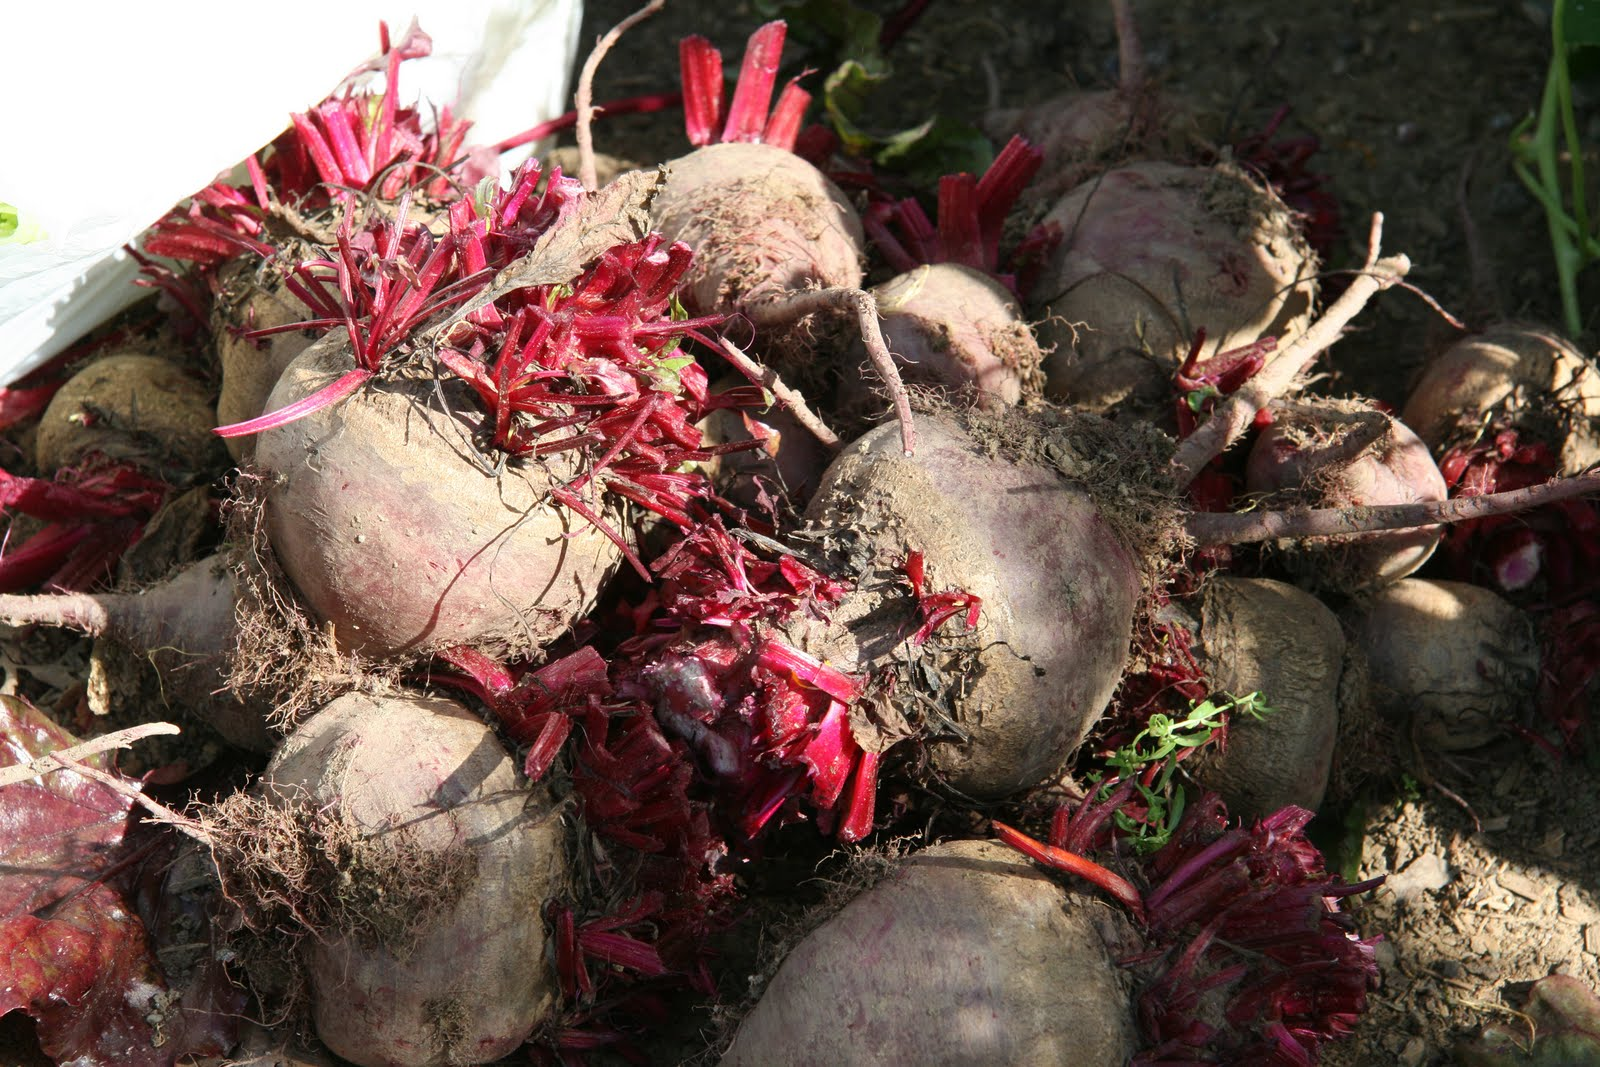 Beets Our Harvest And A Pickled Spiced Beet Recipe Uc Davis Good Life Garden